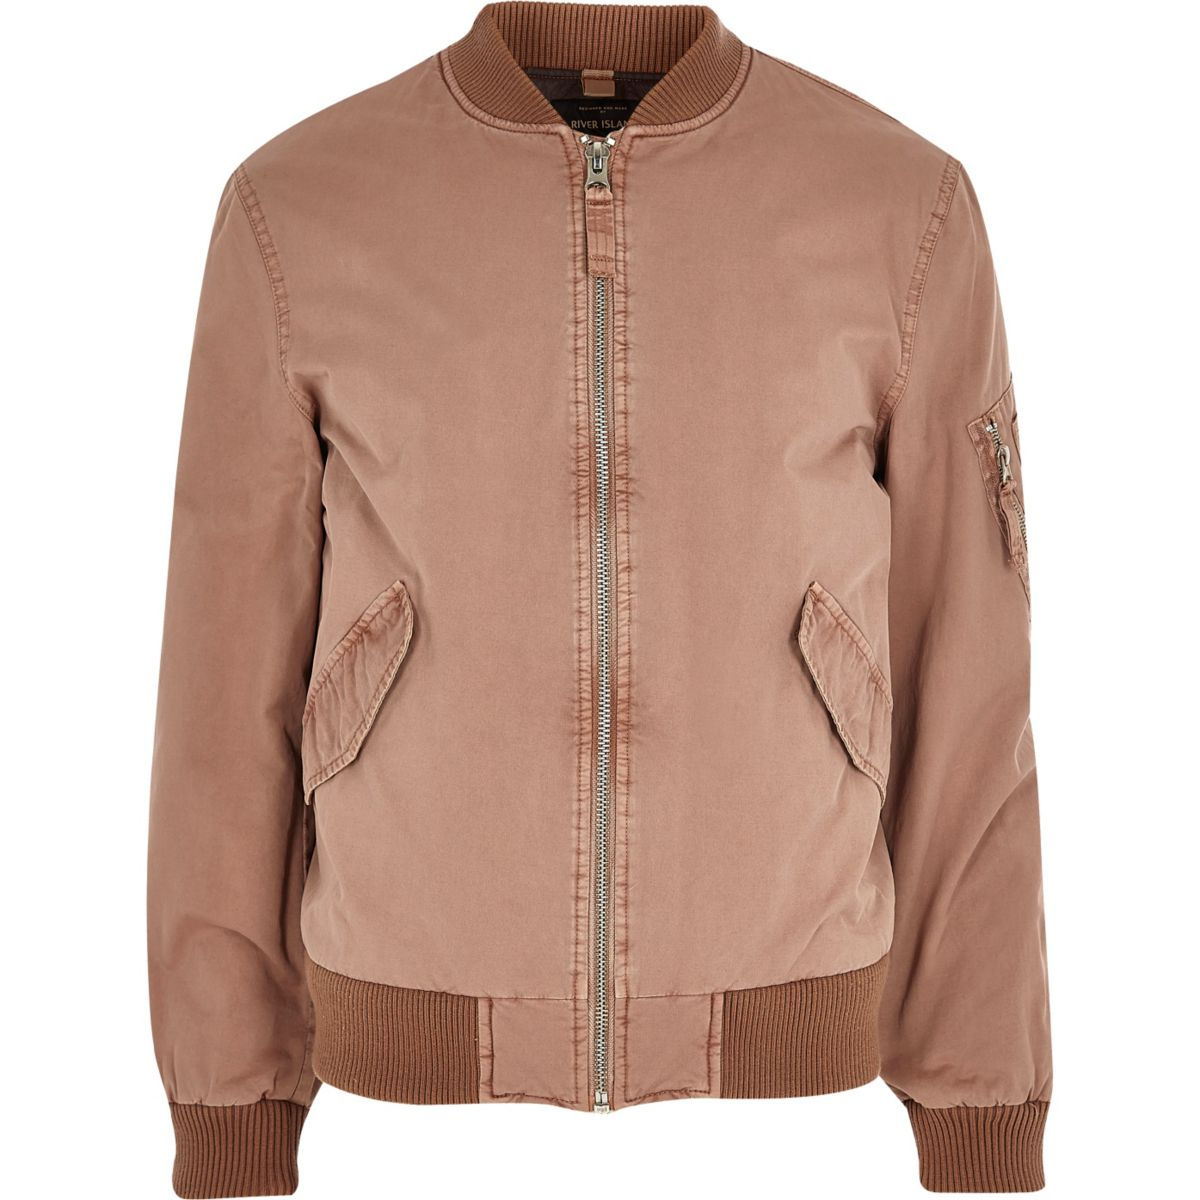 Pink Bomber Jacket by River Island